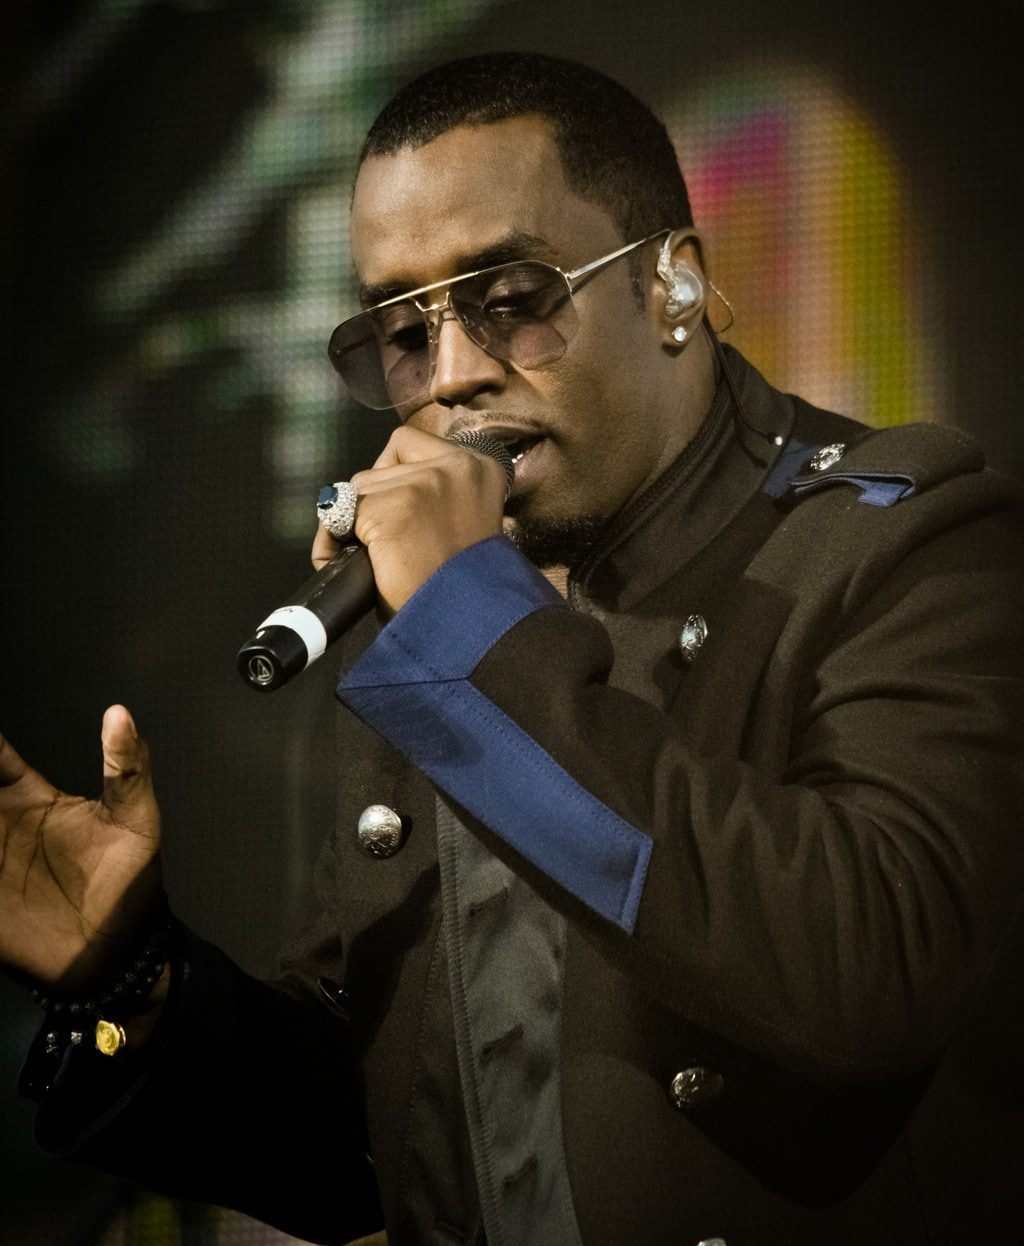 Diddy (Sean Combs) cantando en WWE Tribute to the Troops 2010 / Reckless Dream Photography - Flickr.com